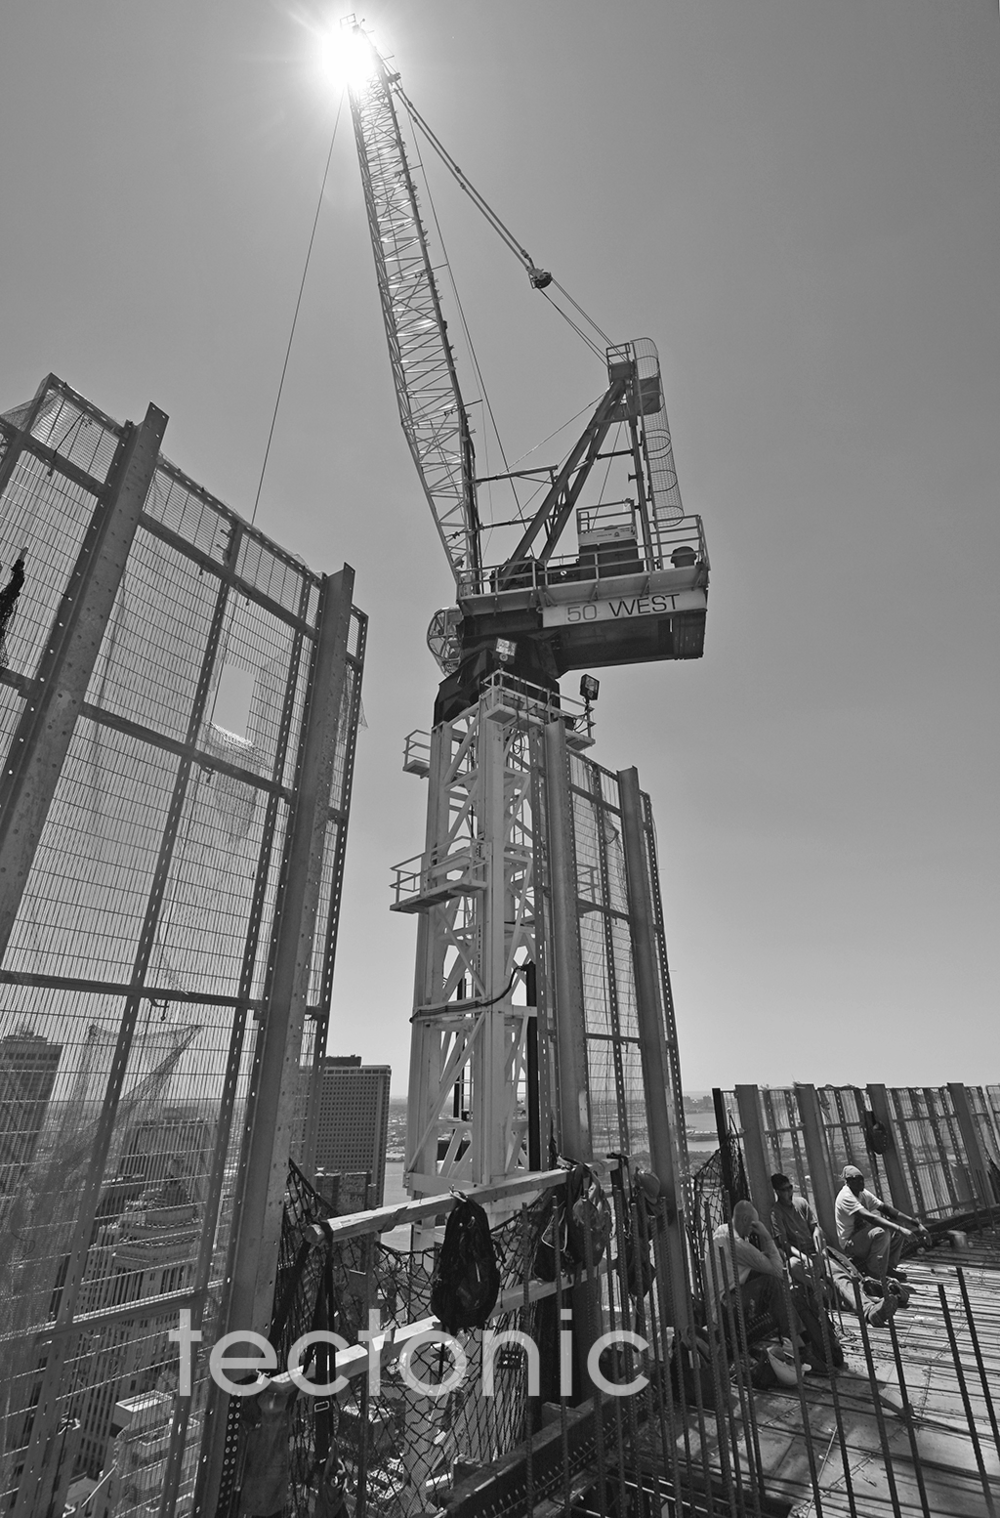 Tower crane in the summer sun